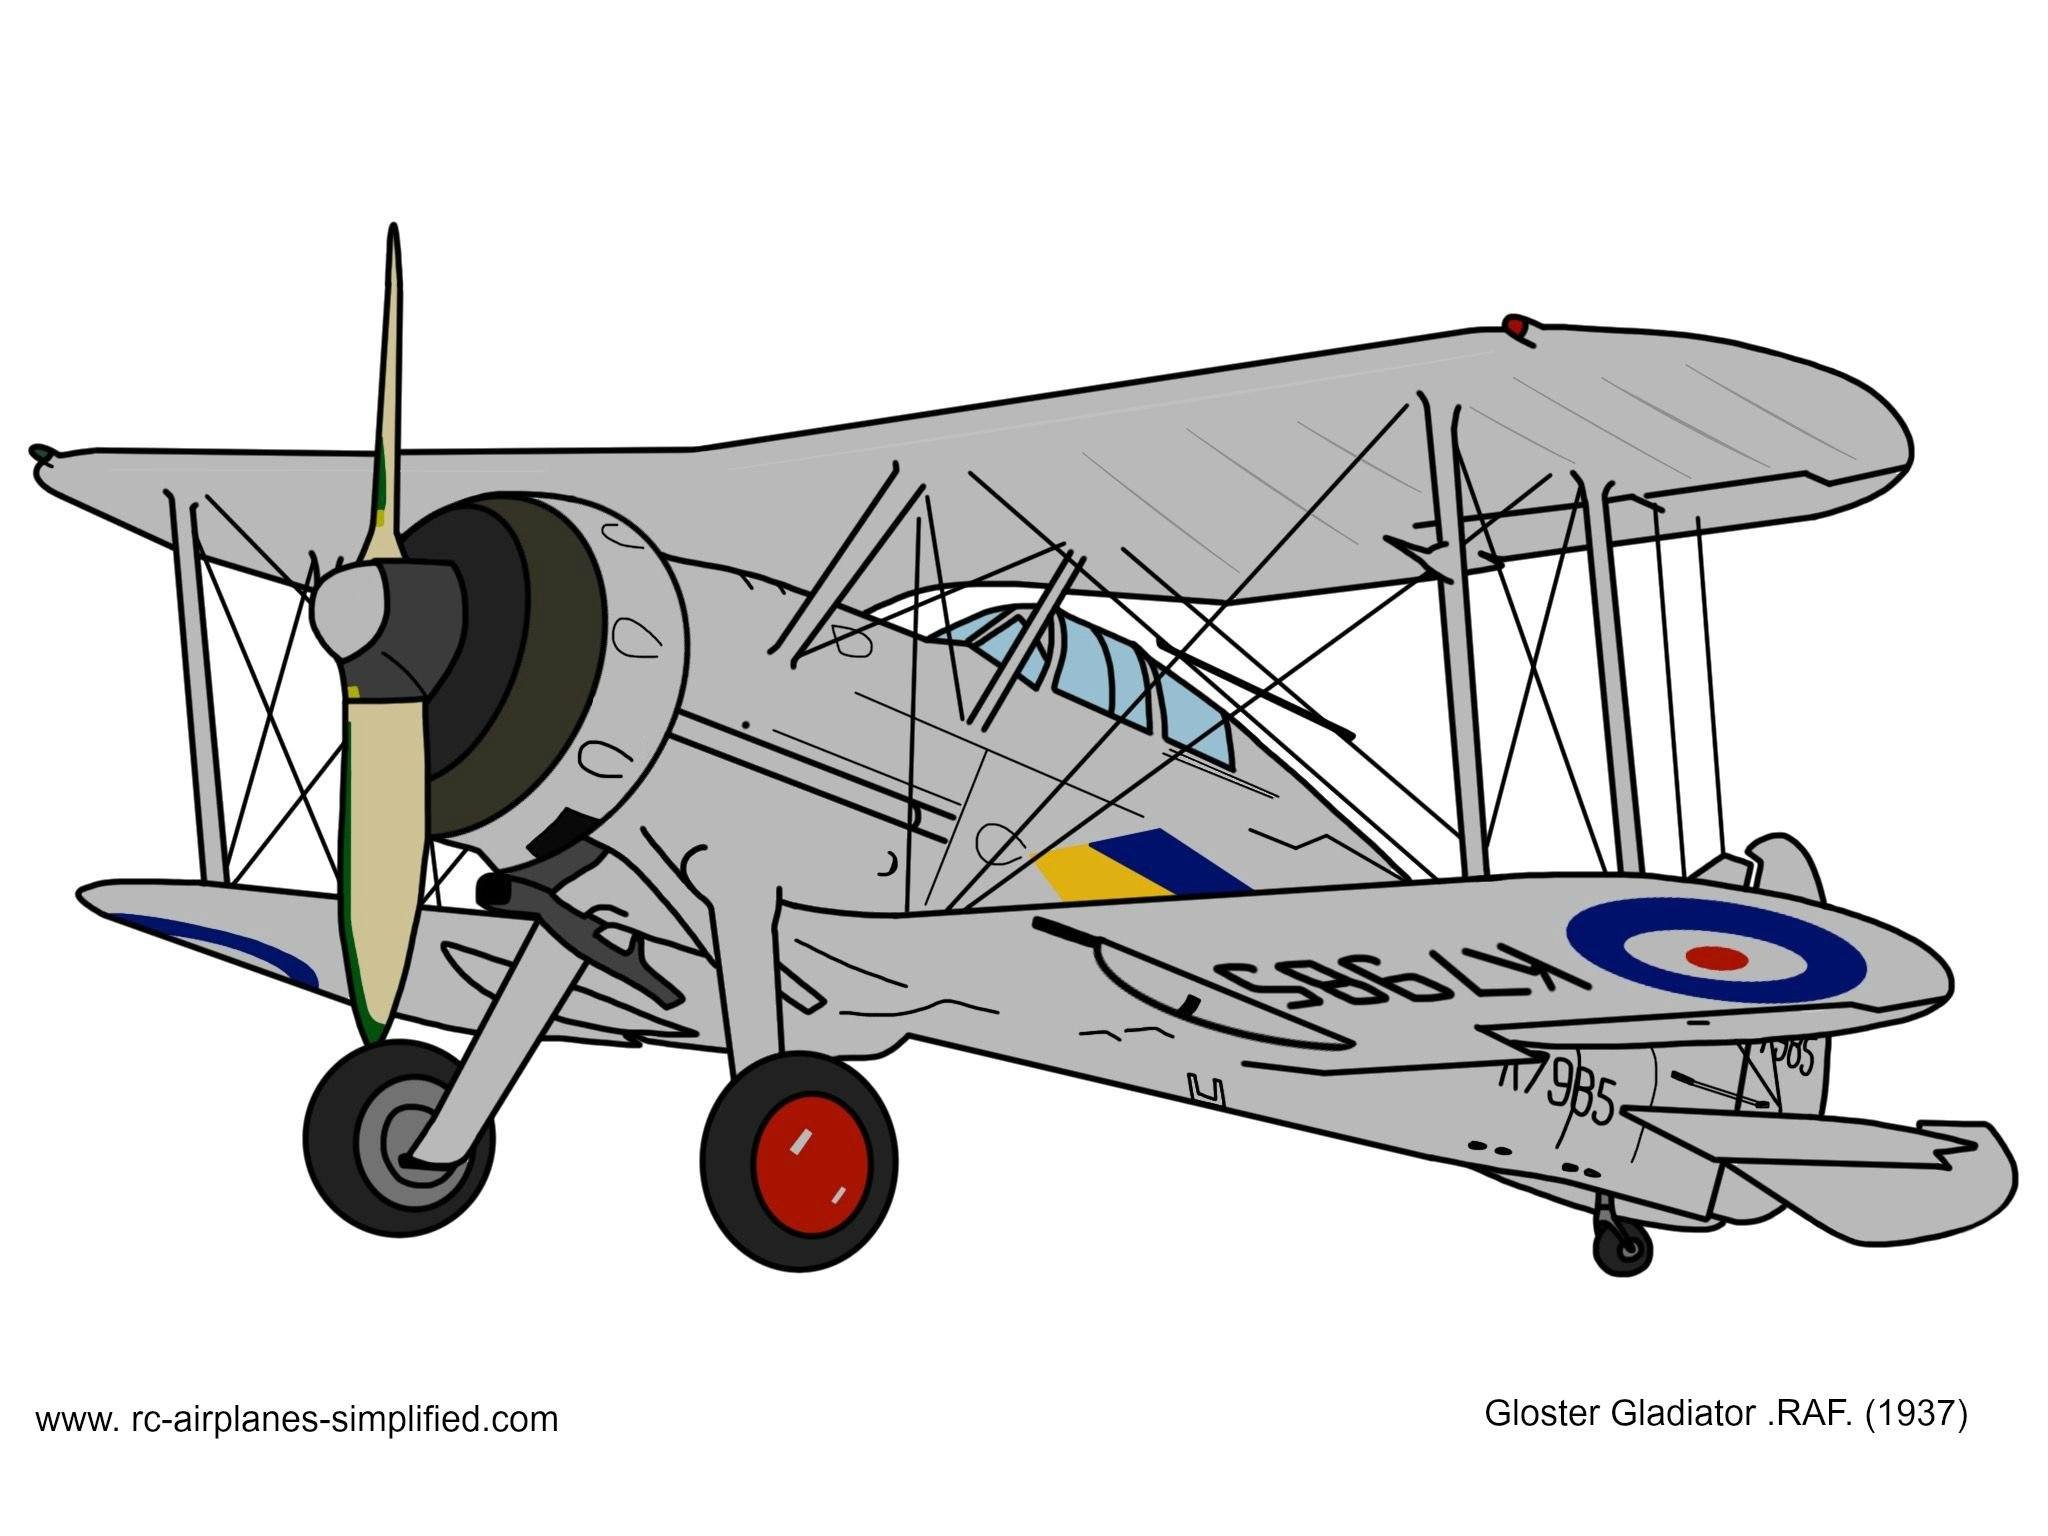 Gloster Gladiator original artwork